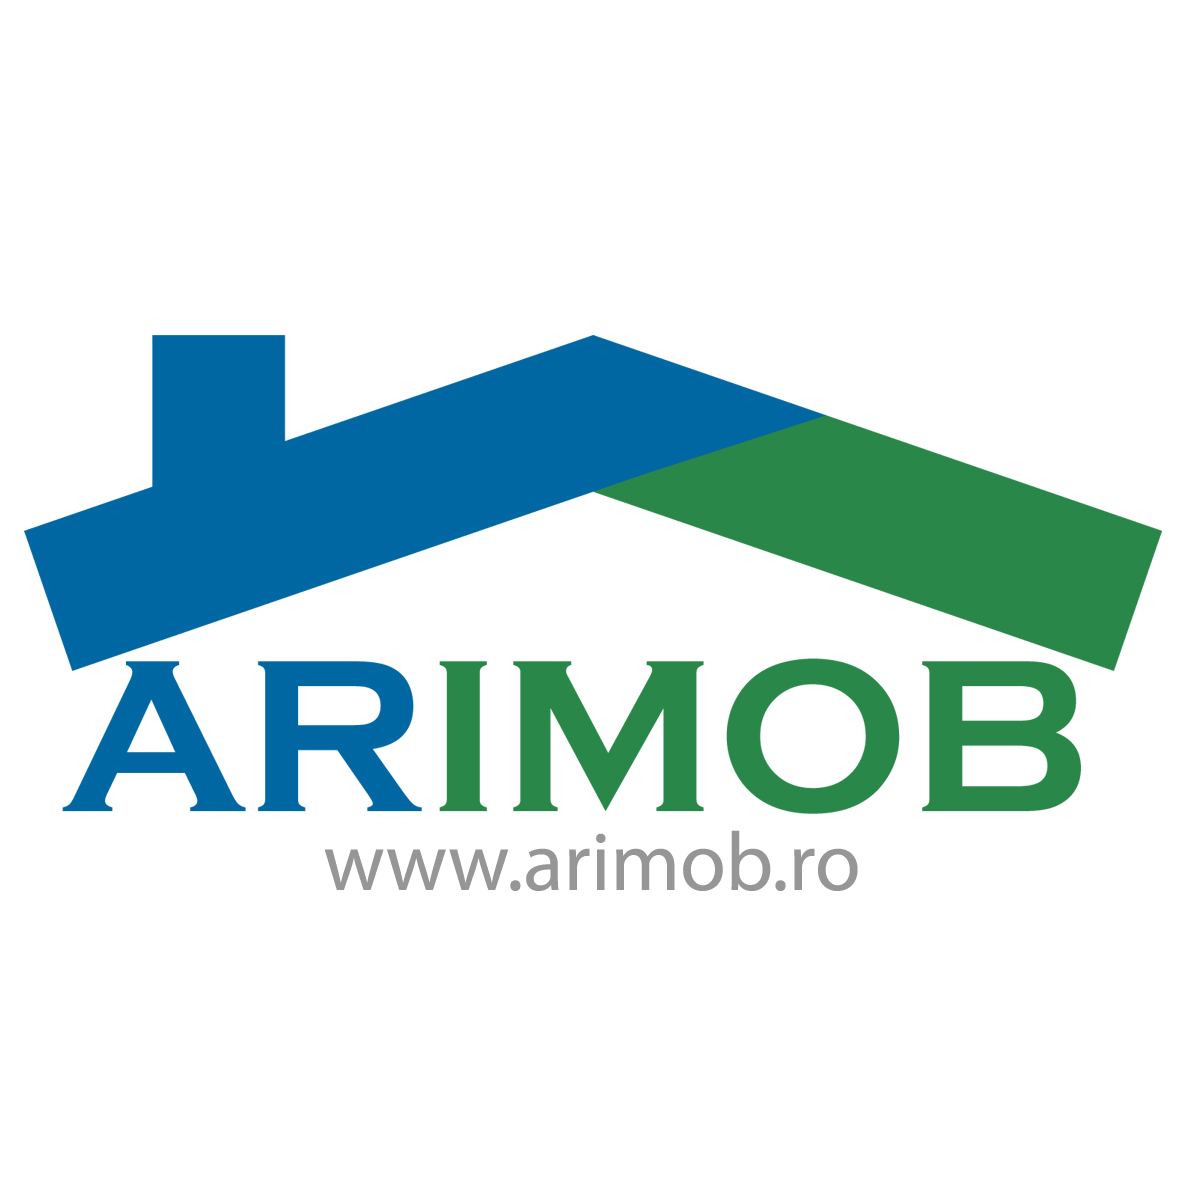 Villa for sale recommended by Arimob